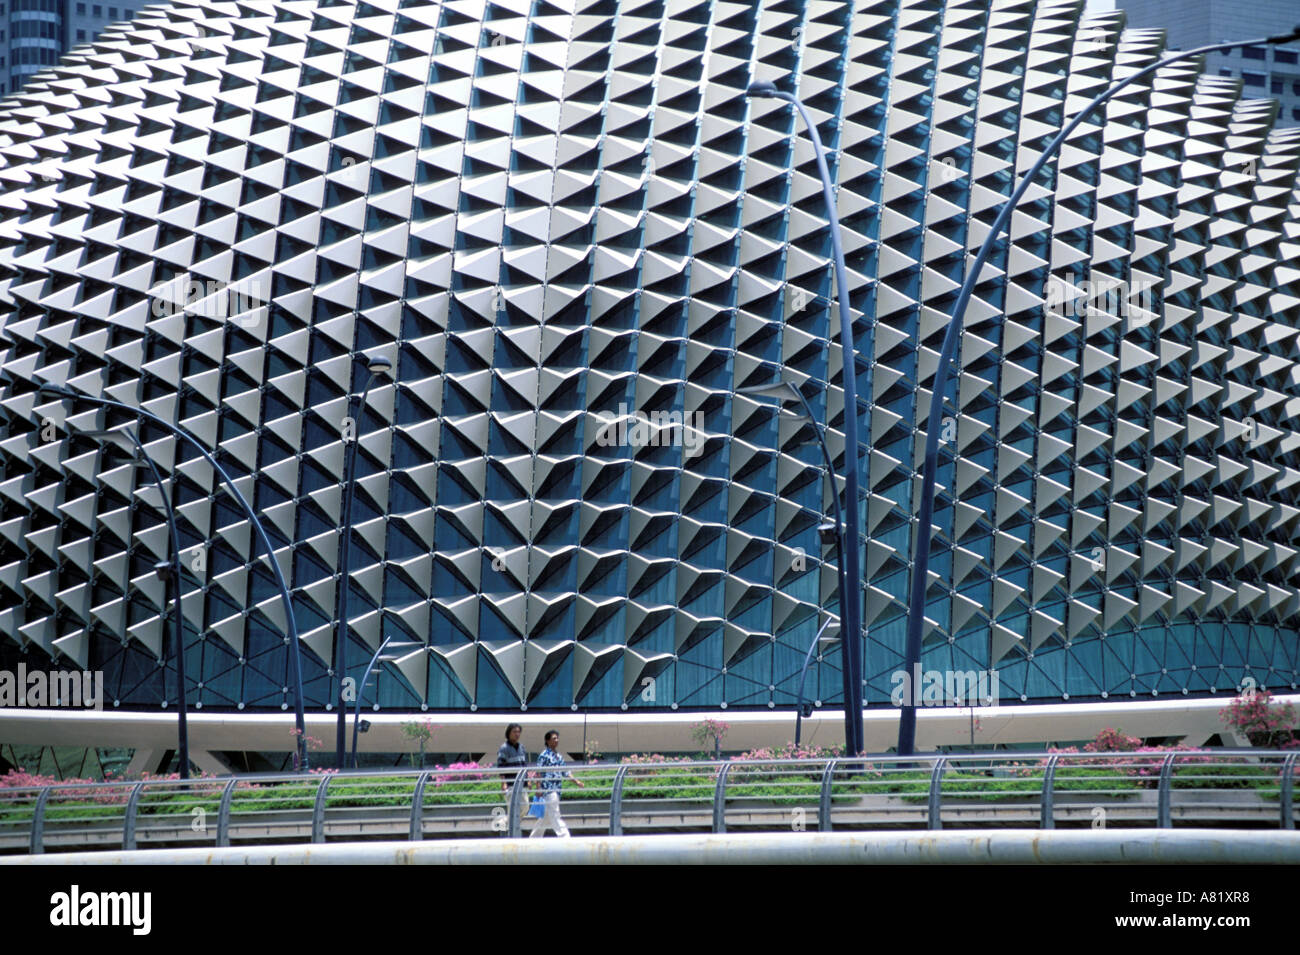 Dp Architekten singapur the esplanade theatres on bay theater und oper